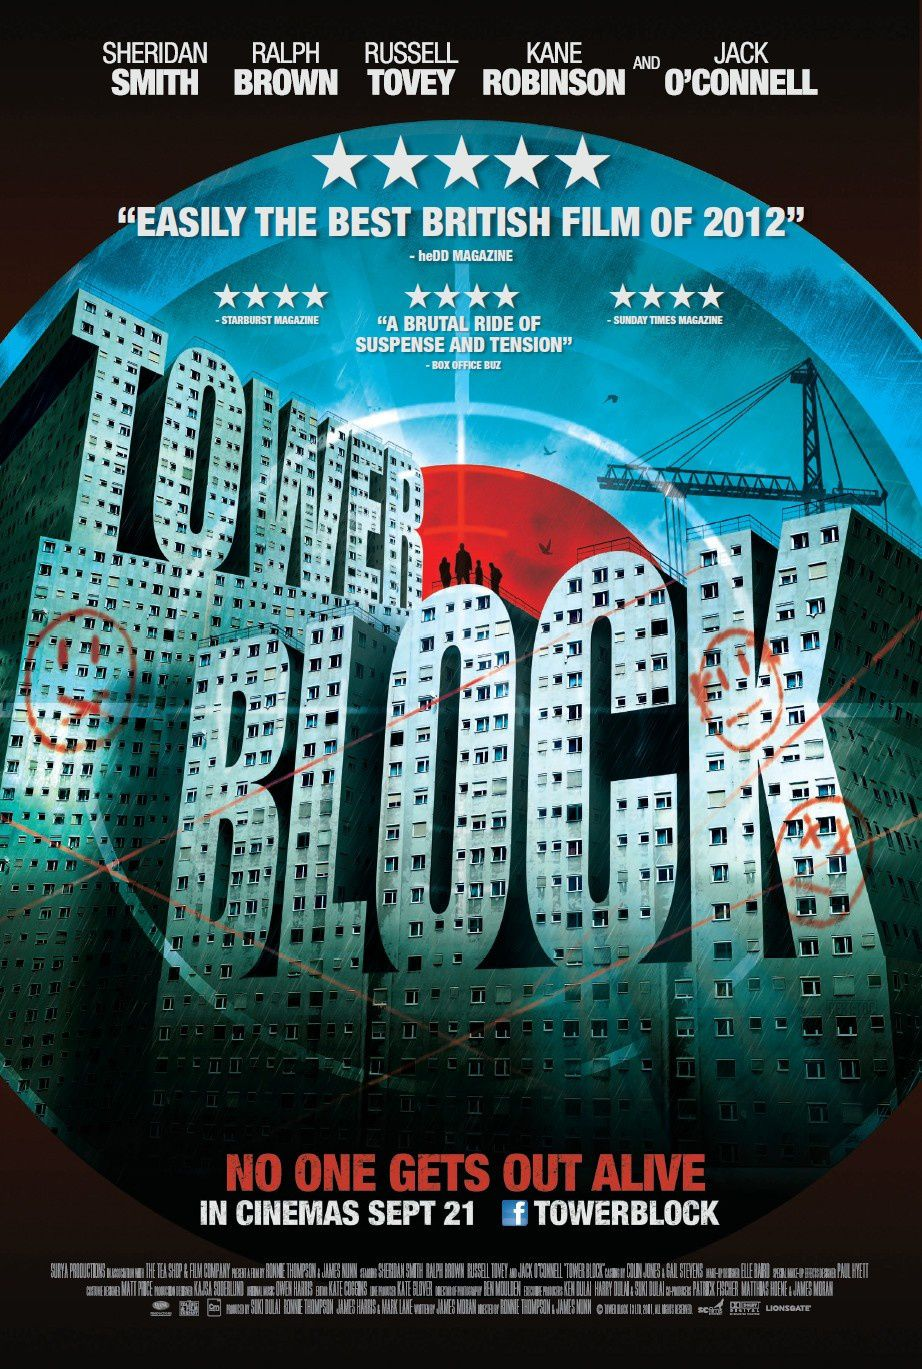 TOWER BLOCK / CINEMA / James Nunn, Ronnie Thompson